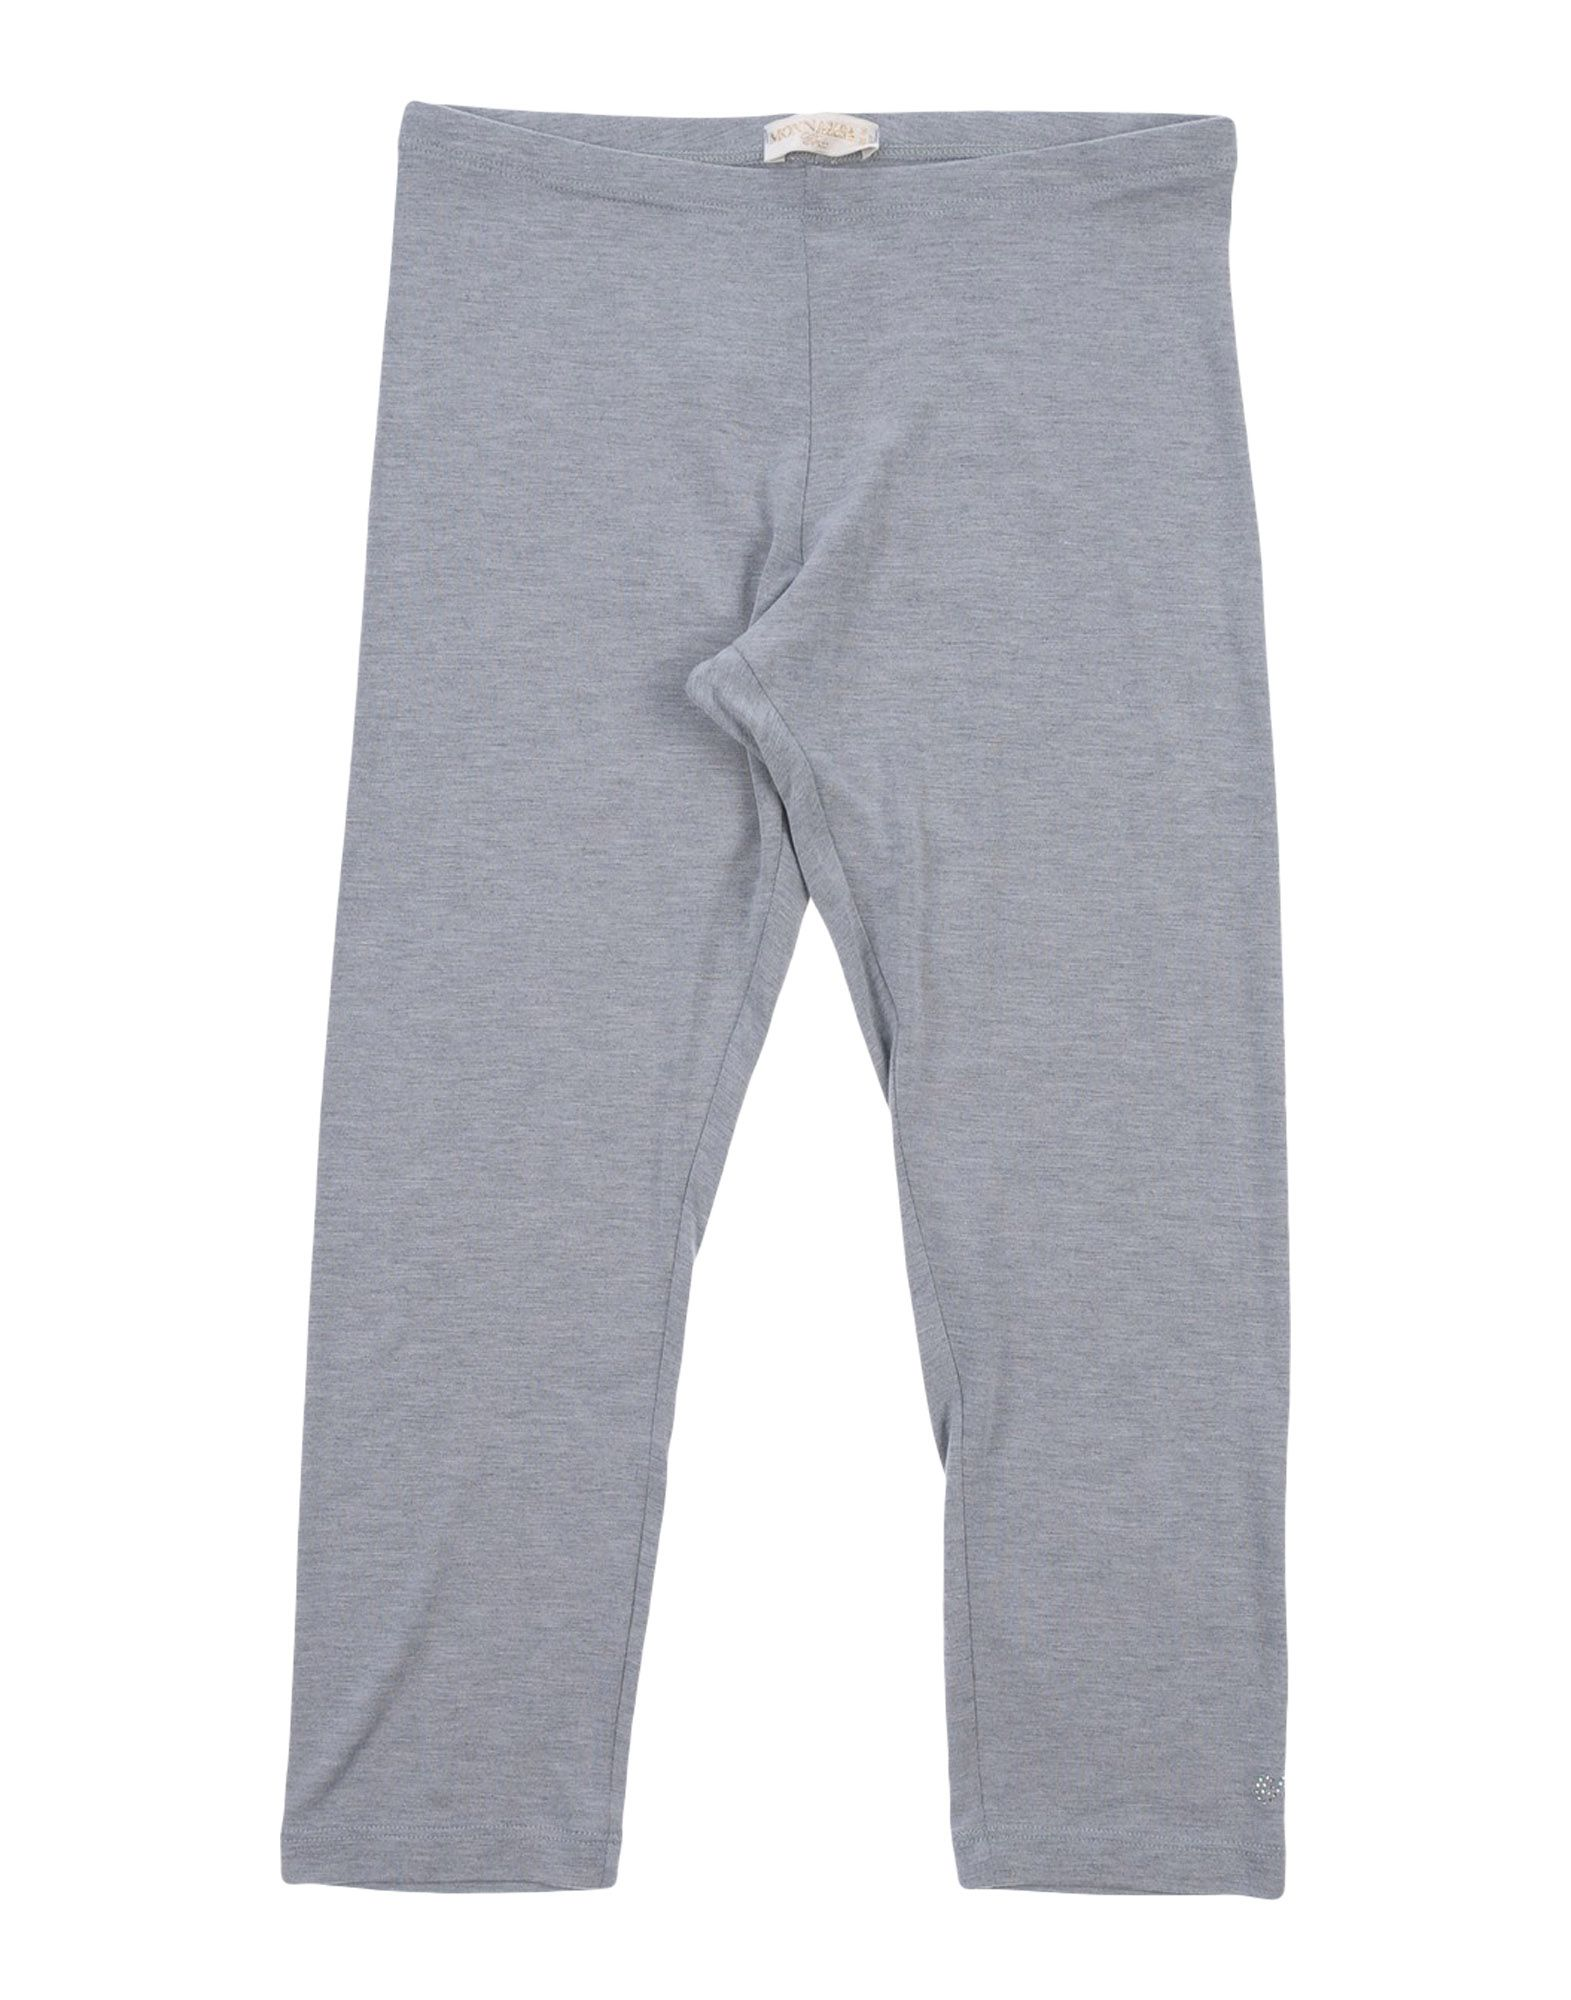 MONNALISA CHIC Leggings in Grey